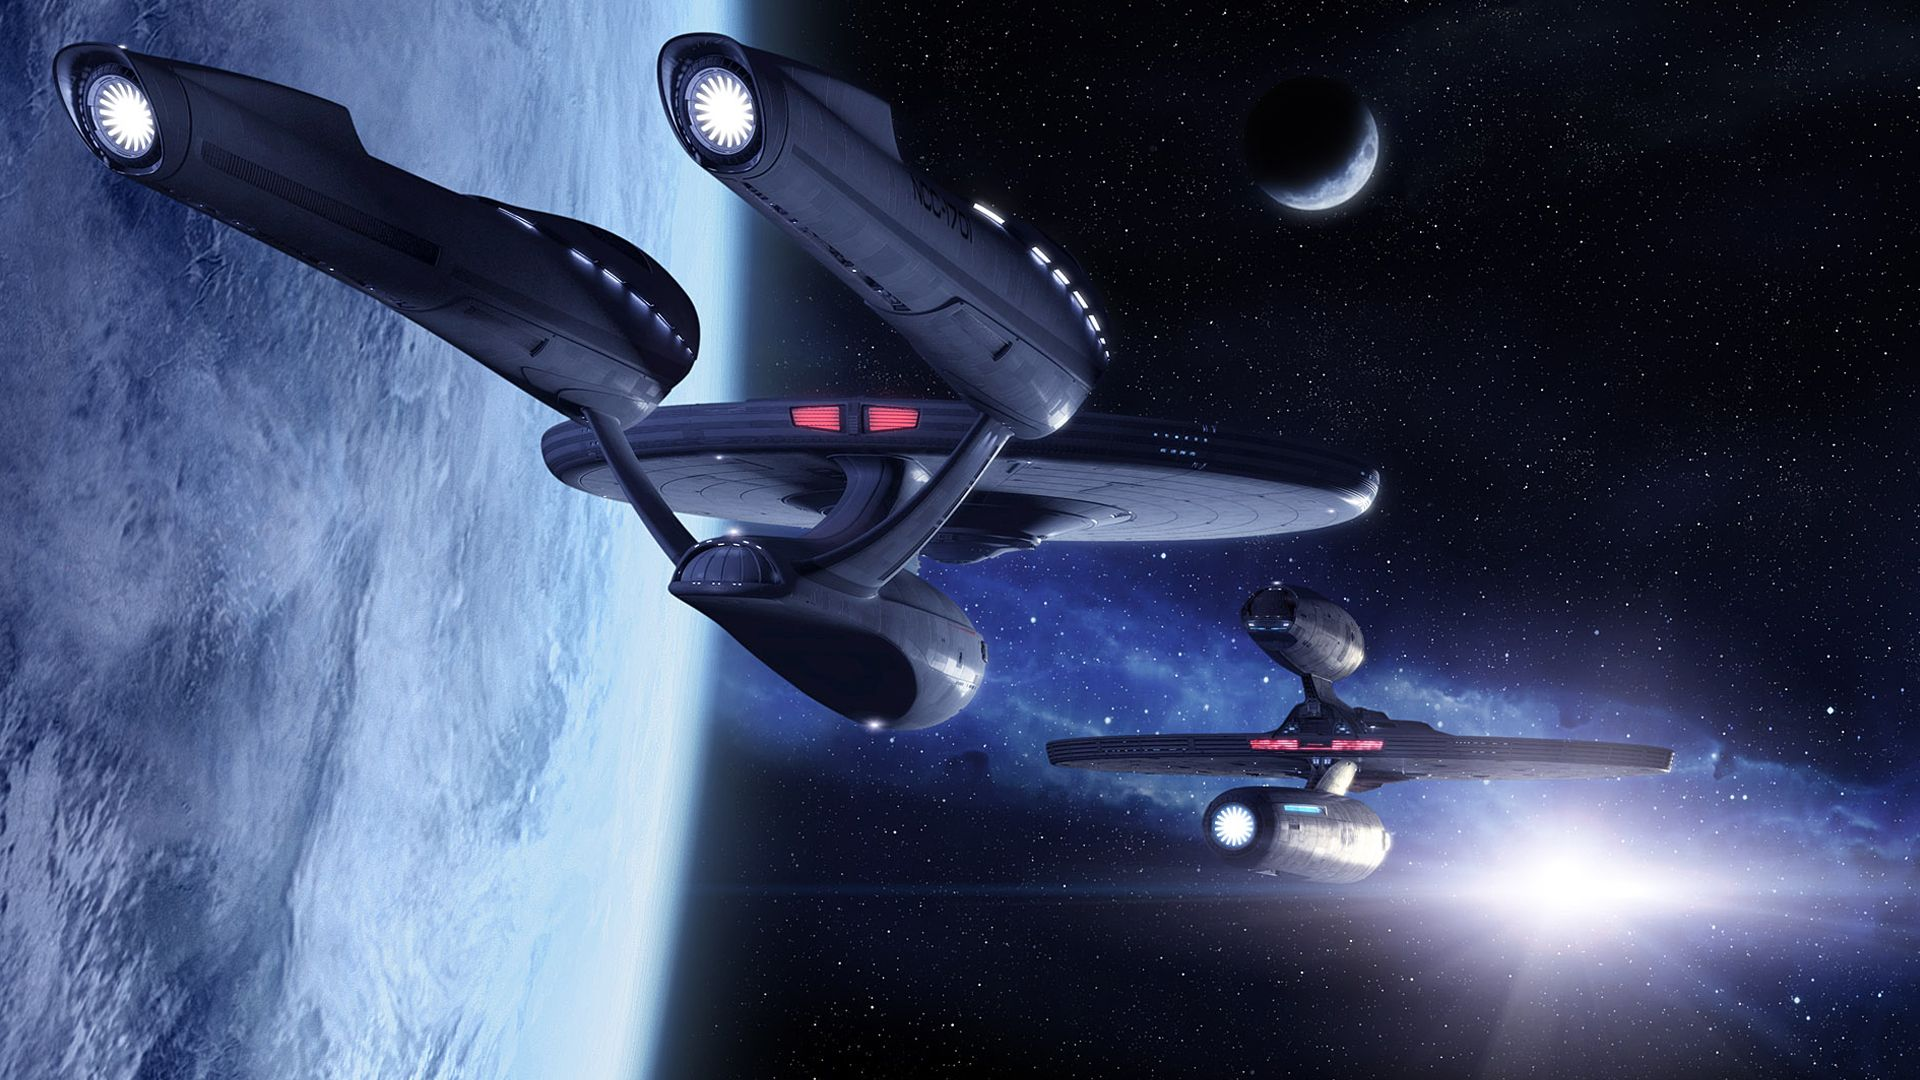 space ships hd wallpaper is an HD wallpaper posted in Space category. You can edit original image, you can download free covers for Facebook, Twitter or Google Plus or you can choose from download links resolution of the wallpaper that fit on your display.